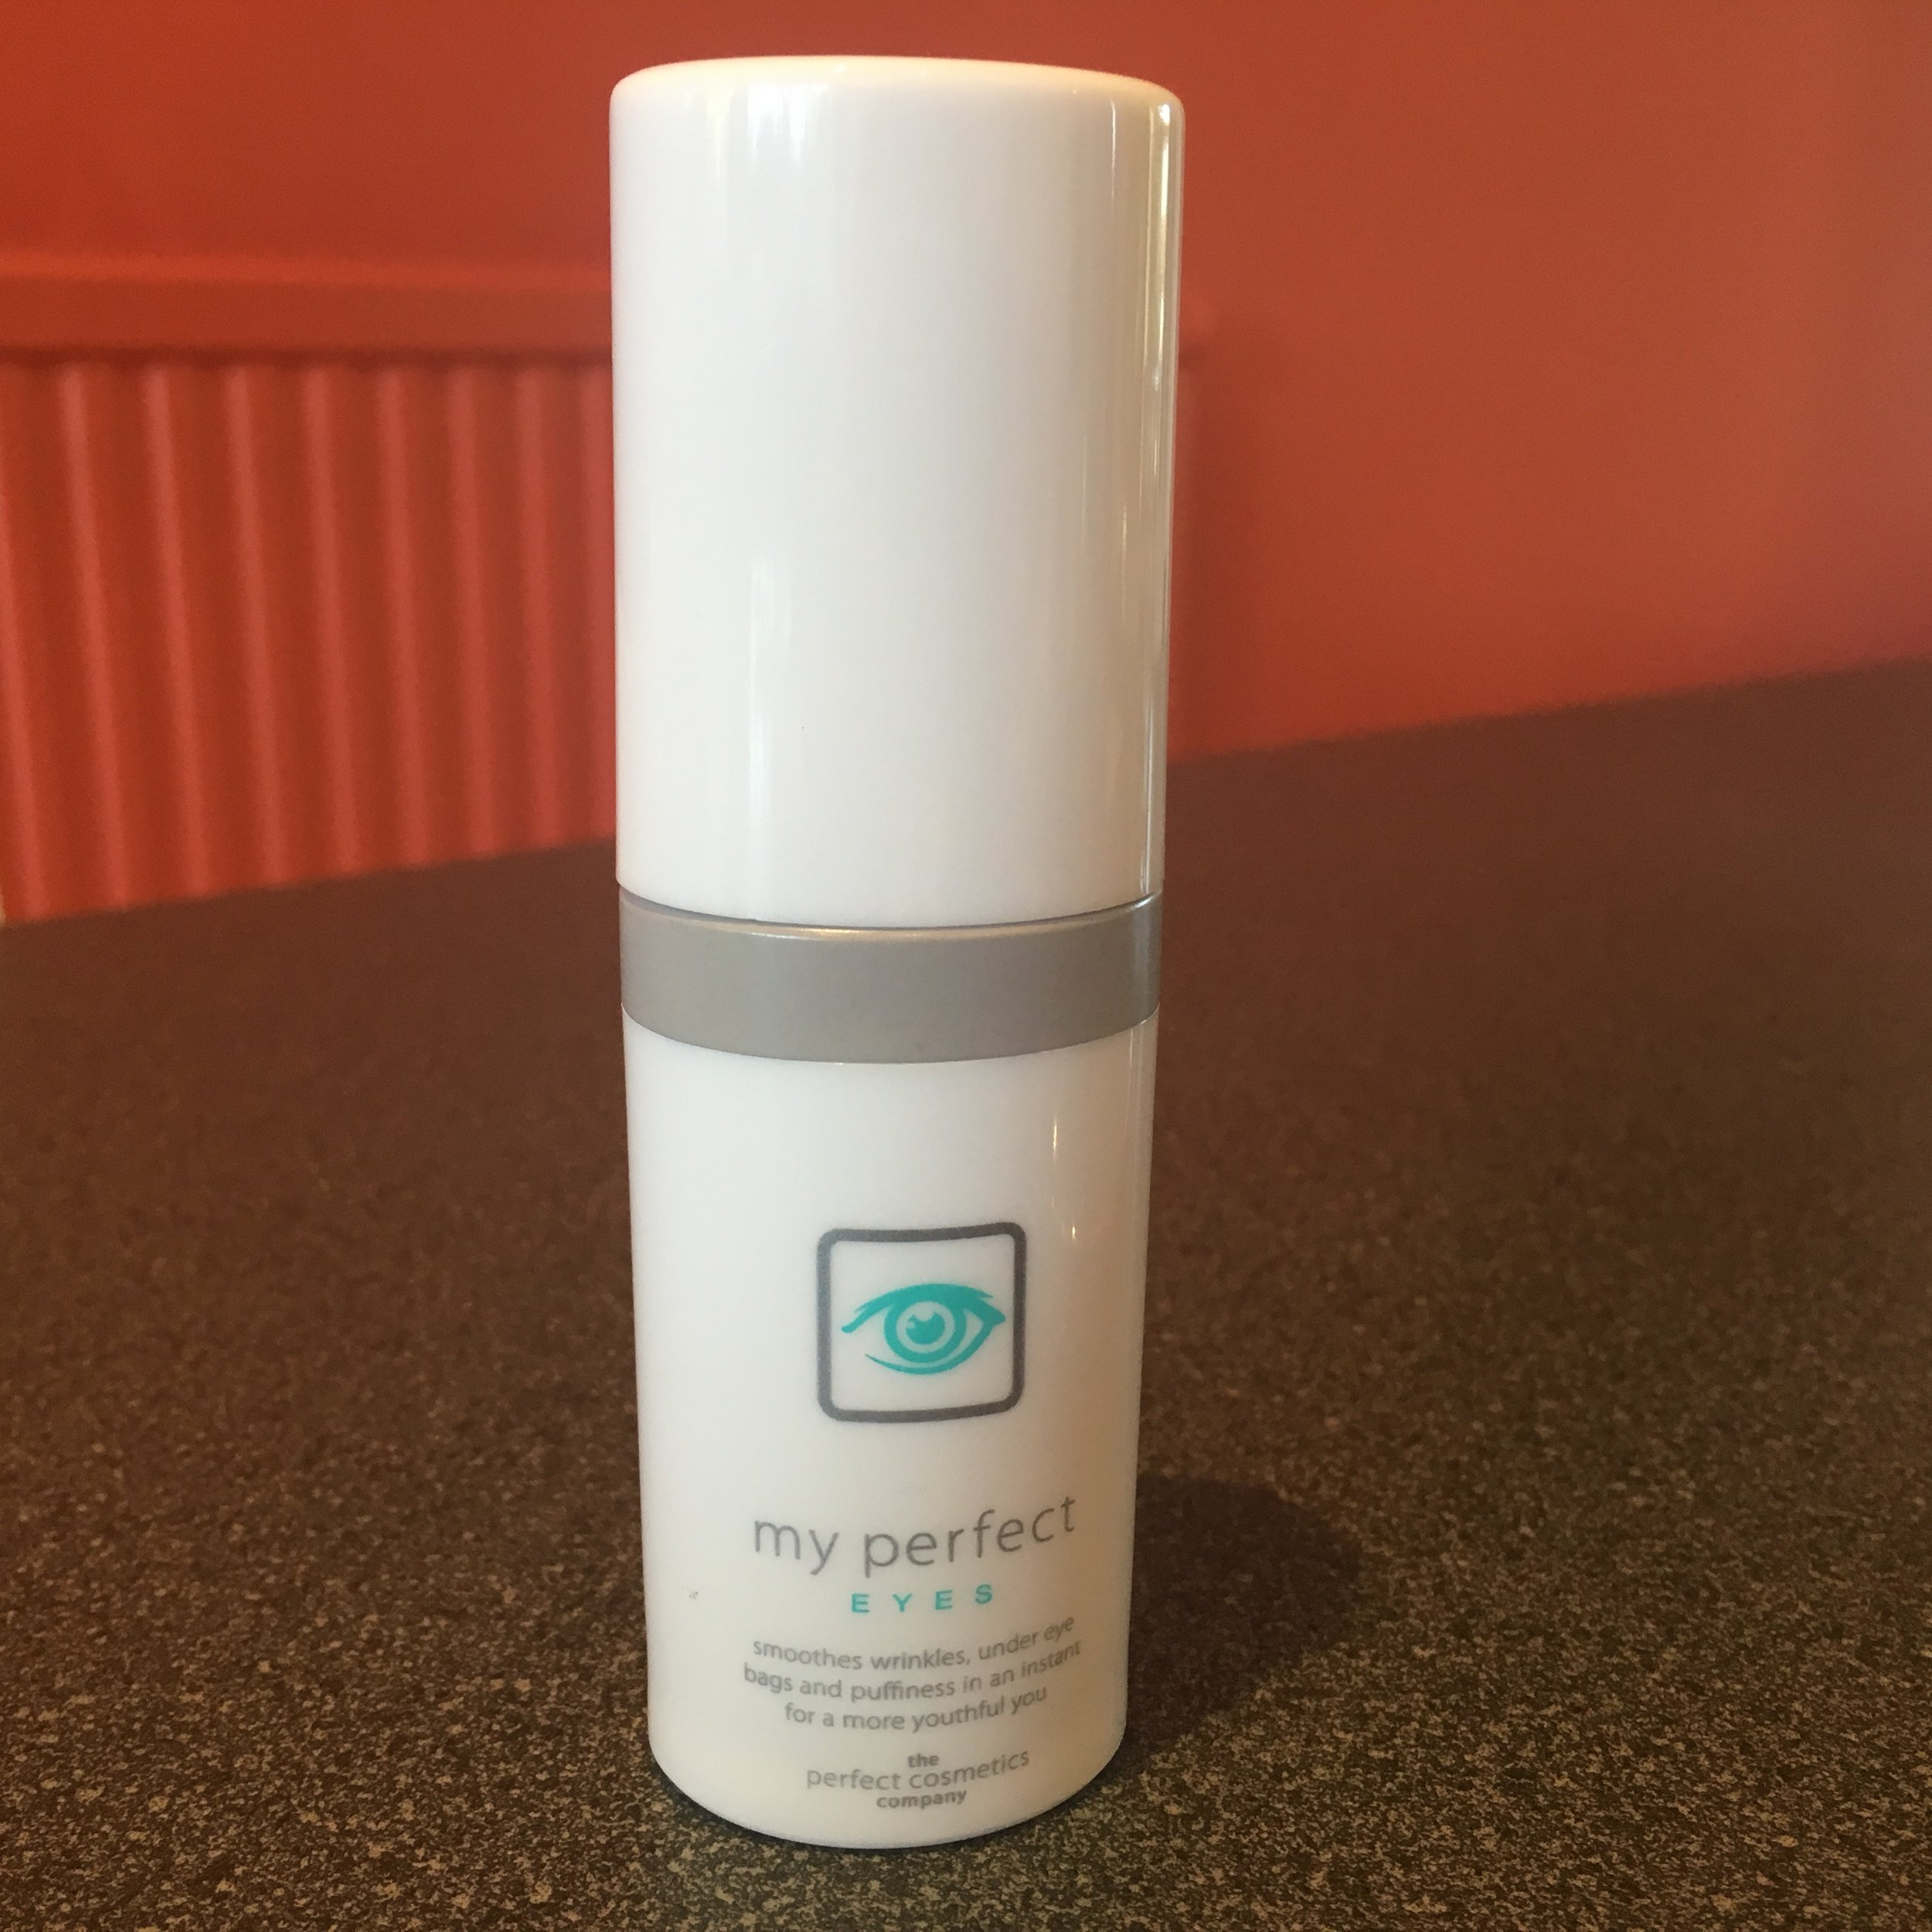 The product: My Perfect Eyes wrinkle-smoothing gel